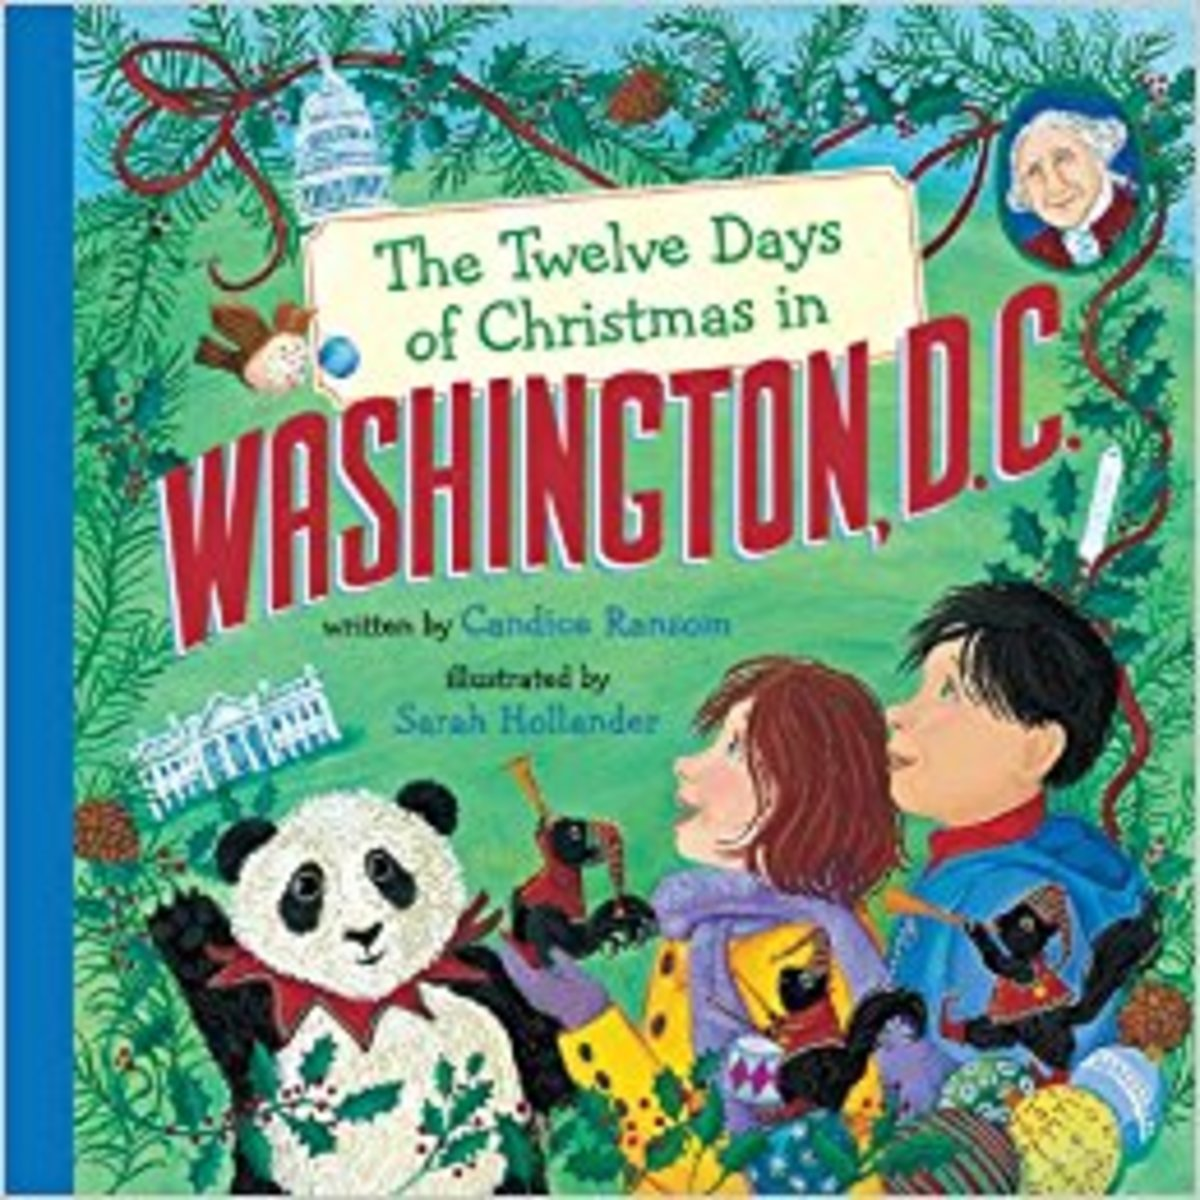 The Twelve Days of Christmas in Washington, D.C. by Candice Ransom